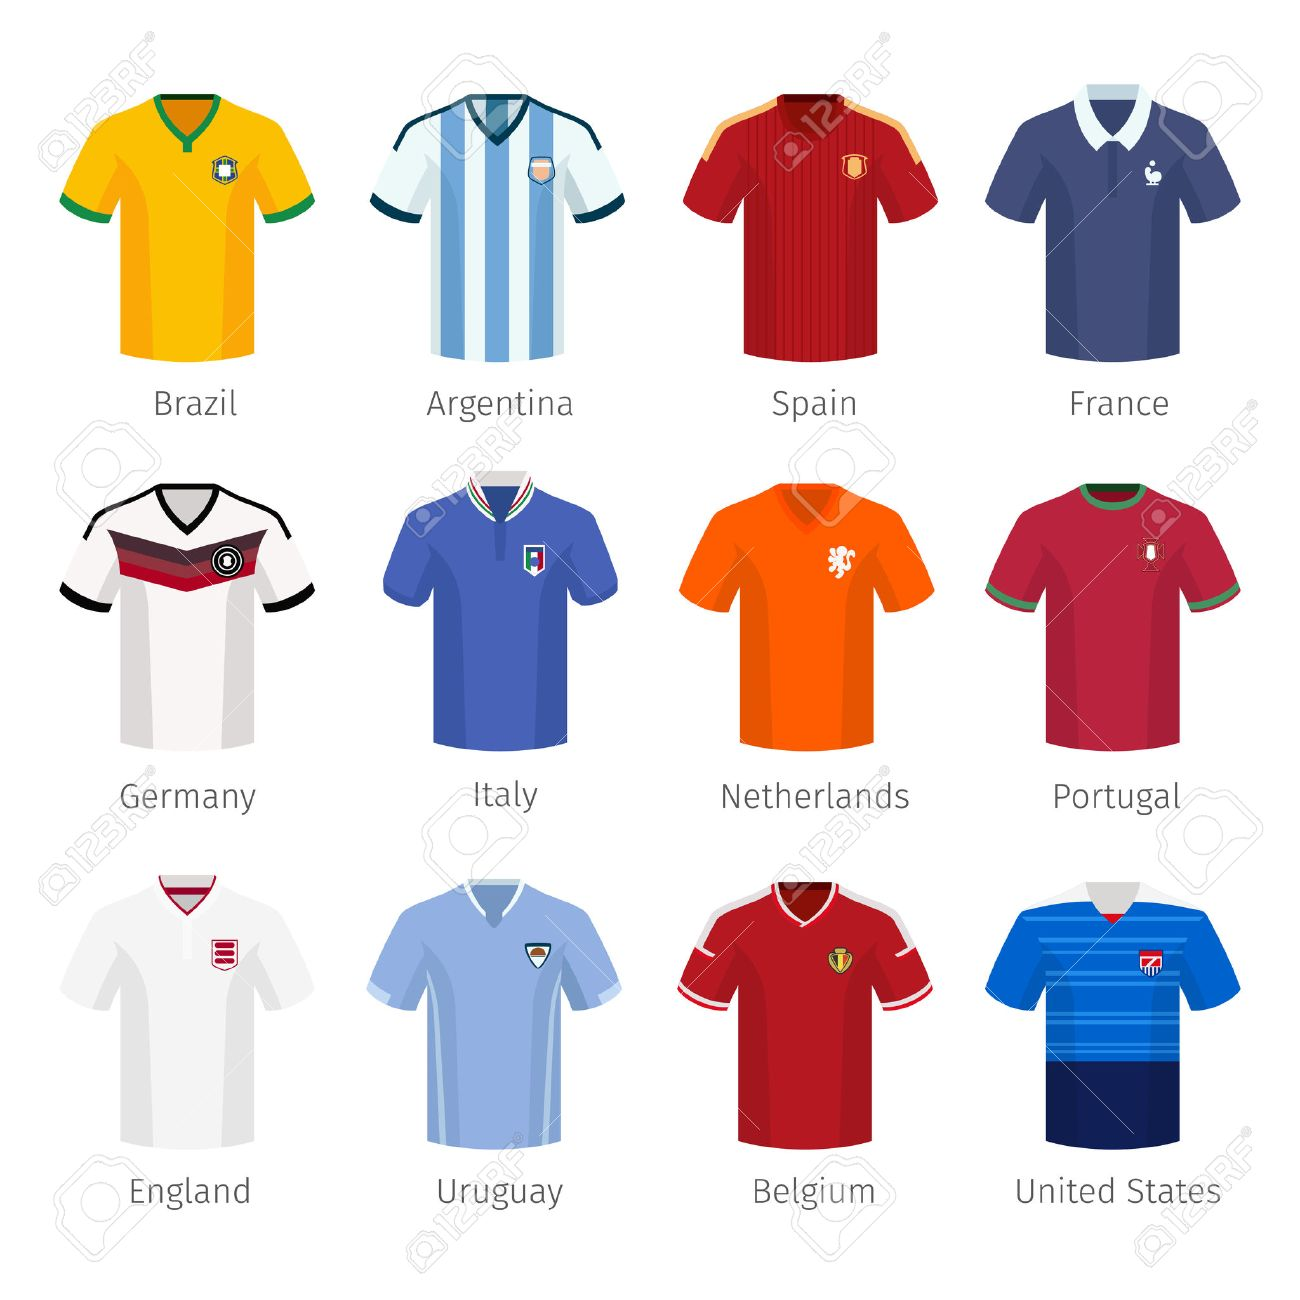 d83fe89e6 Vector illustration. Soccer uniform or football of national teams.  argentina brazil spain france germany italy netherlands portugal